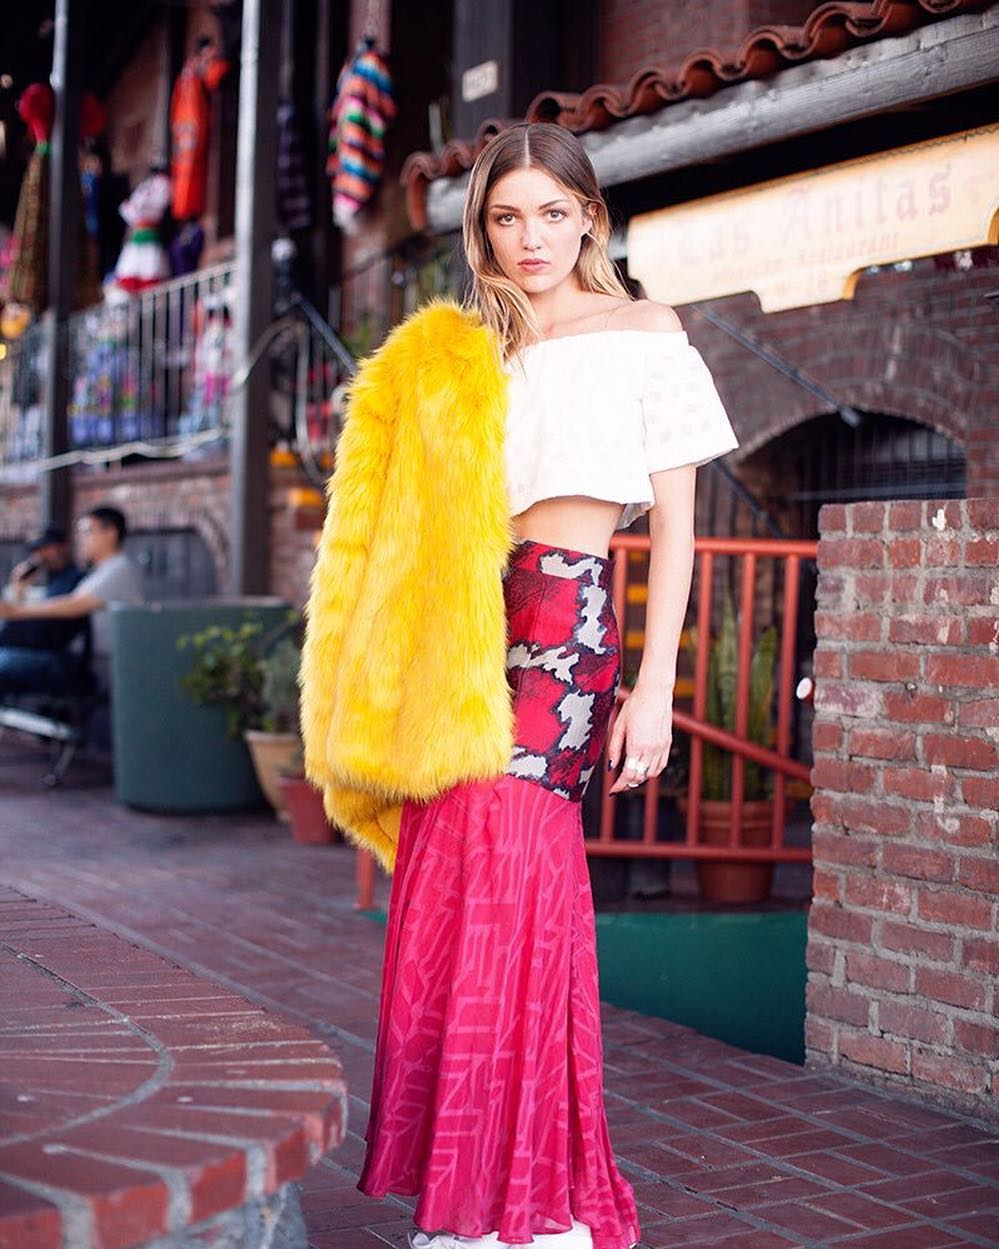 Lili Simmons is looking extraordinary in her yellow-pink attire